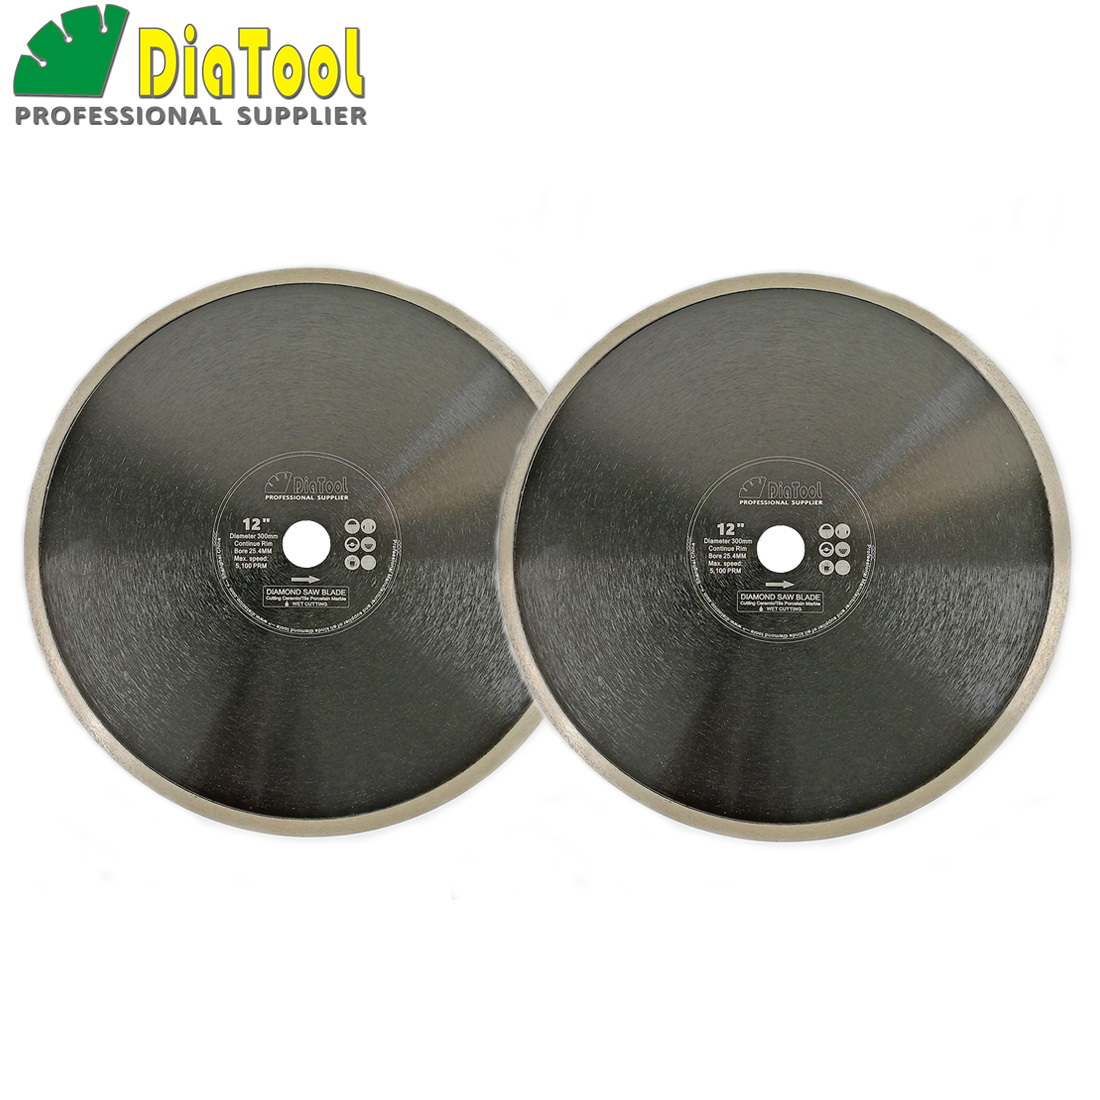 DIATOOL 2pcs Dia 12 inch Hot-pressed Continue Rim Diamond Blades Cutting Disc 300mm Porcelain Tile Ceramic Marble Saw Blade Disk diatool 2pcs 4 5 115mm hot pressed continue rim cutting diamond blade ceramic tile sawblade thin cutting disc diamond wheel